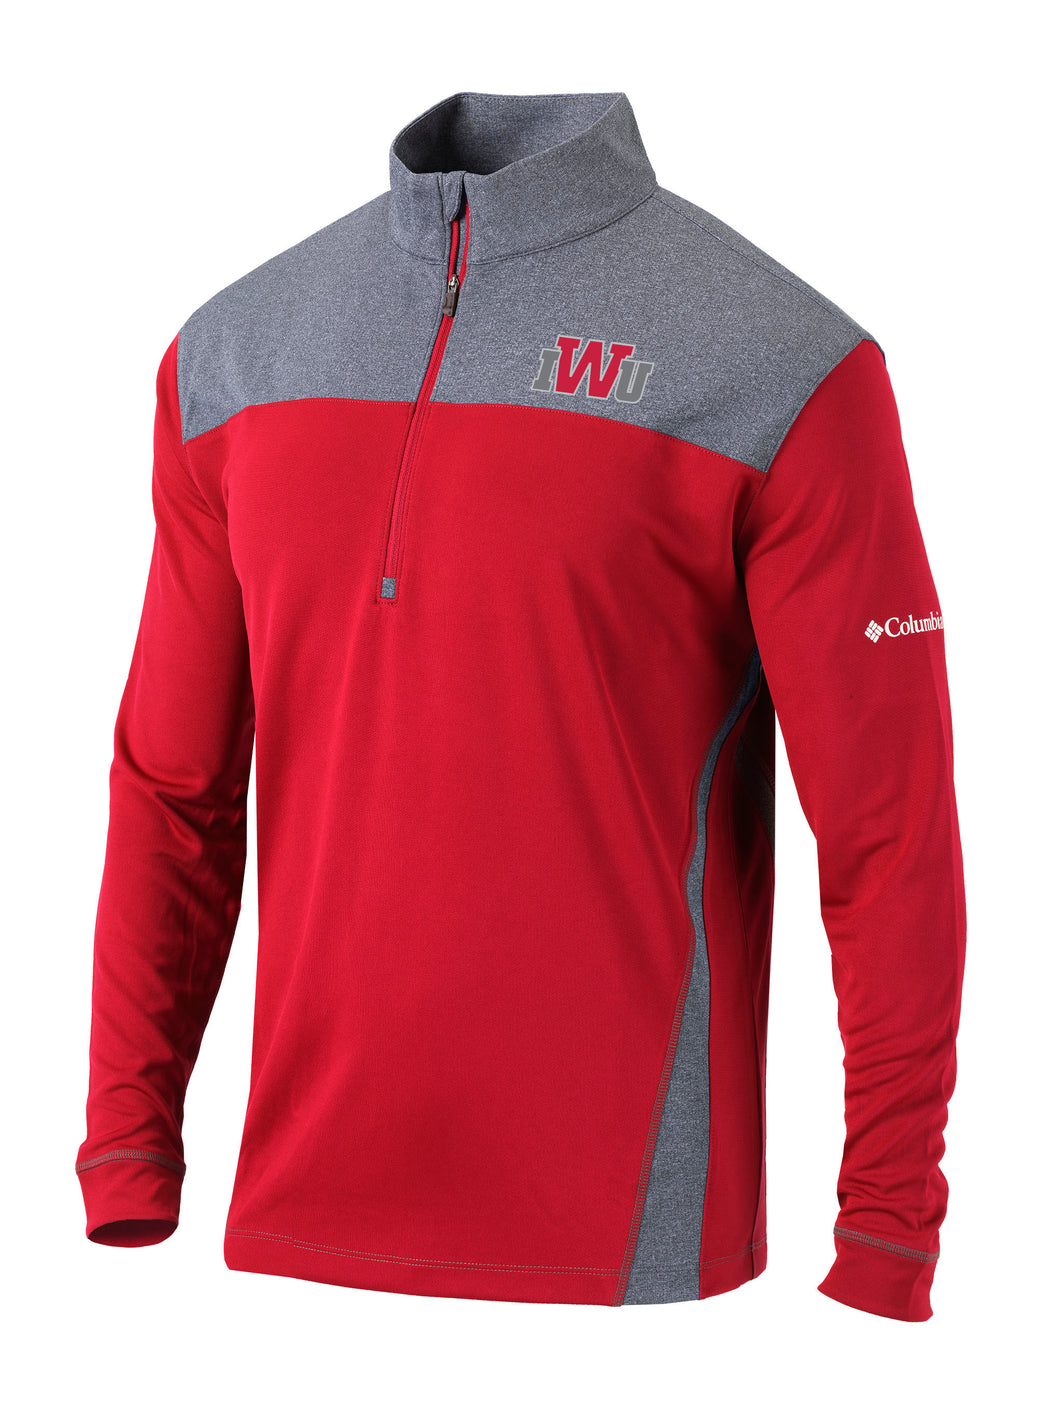 Columbia Men's Omni-Wick 1/4 Zip, Intense Red